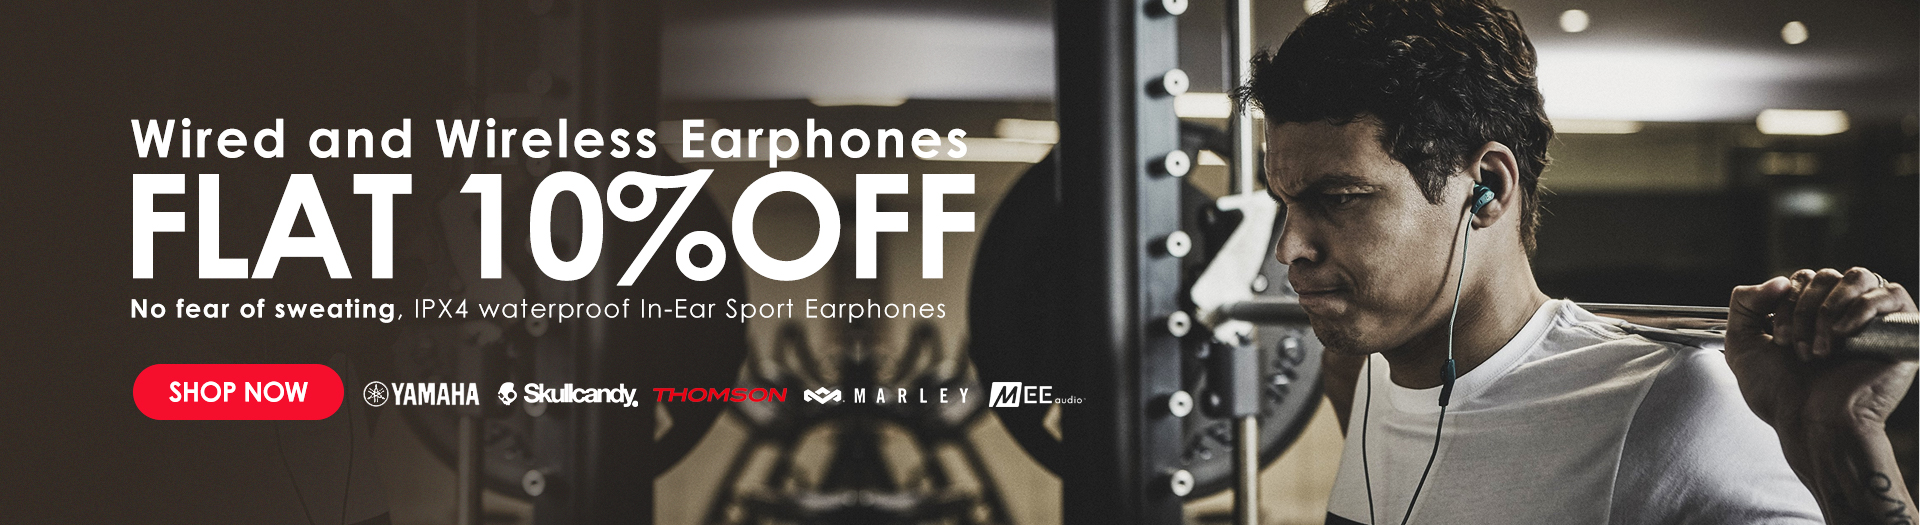 Wired and wireless earphones on sale